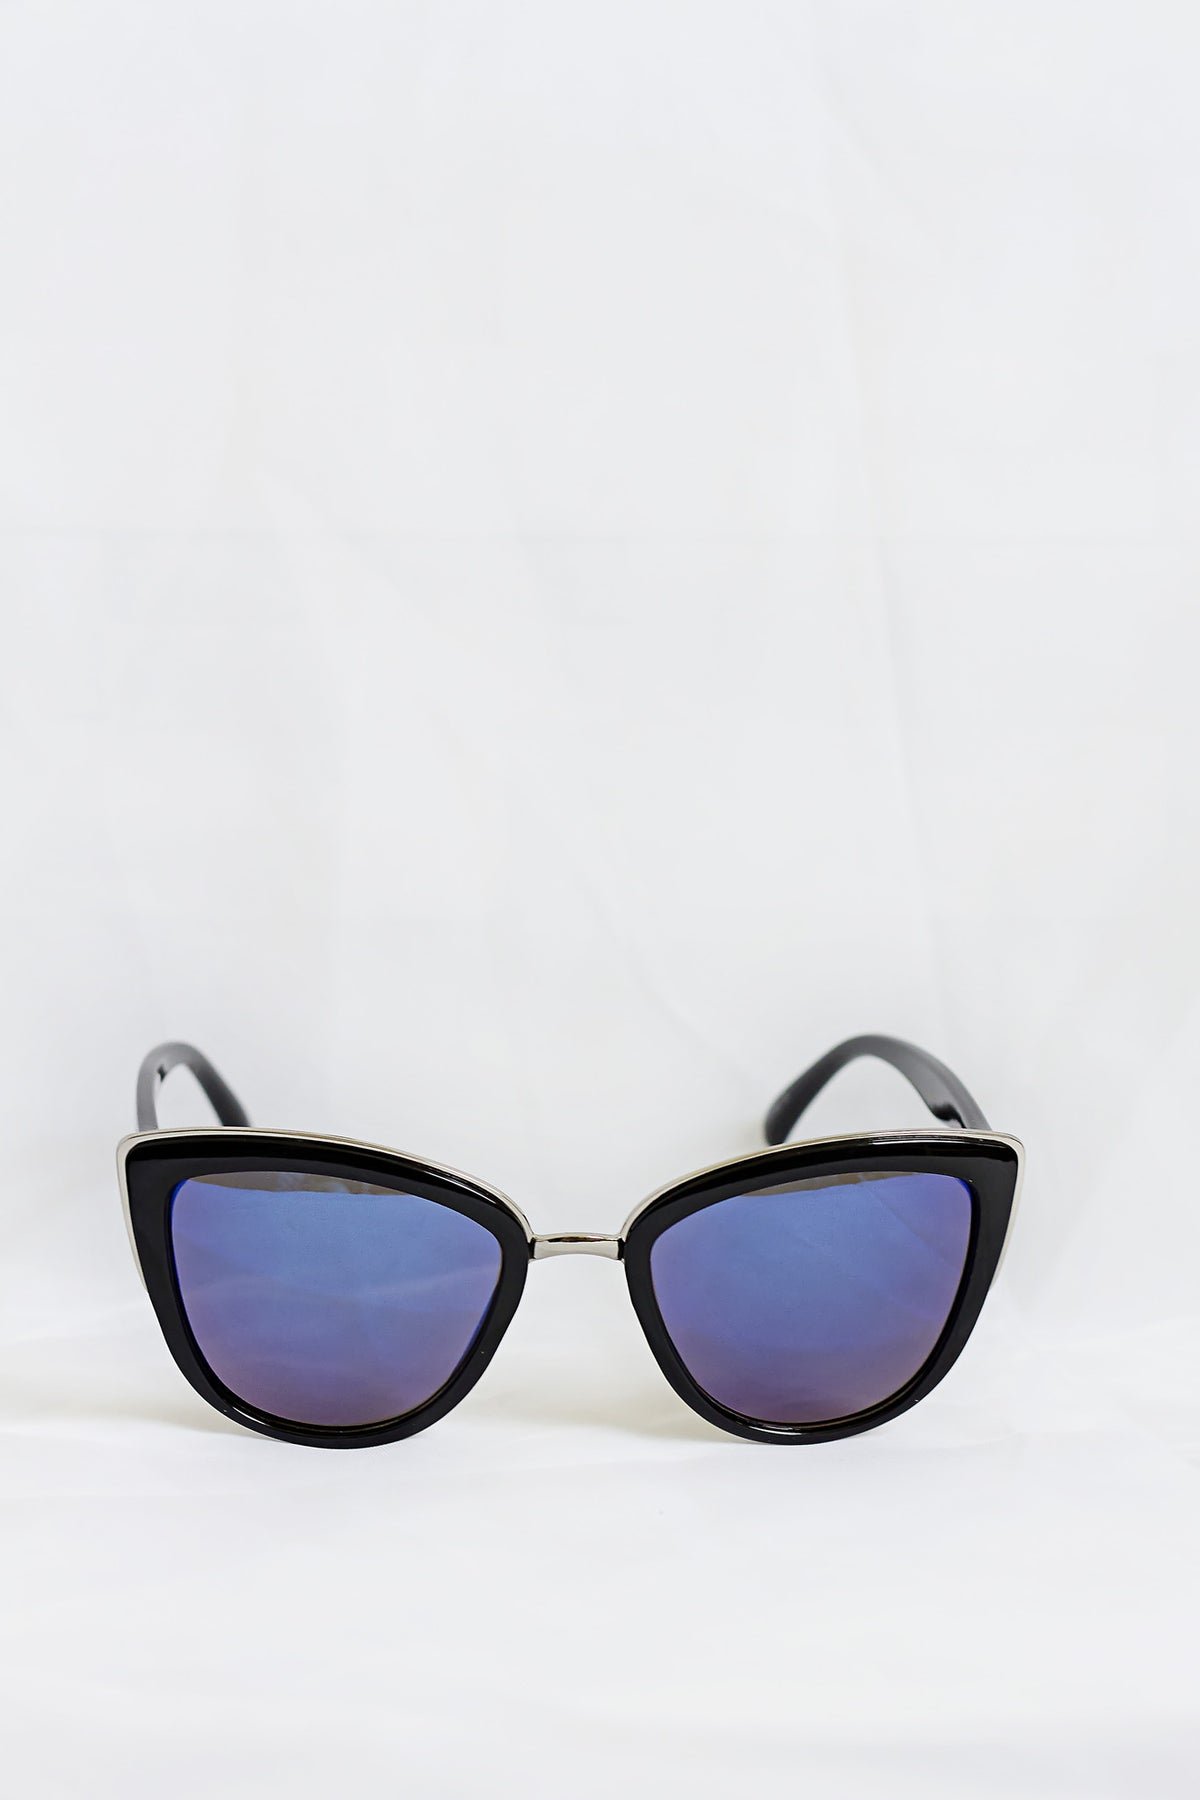 Idol Black Sunglasses - Blue Lenses - House of W